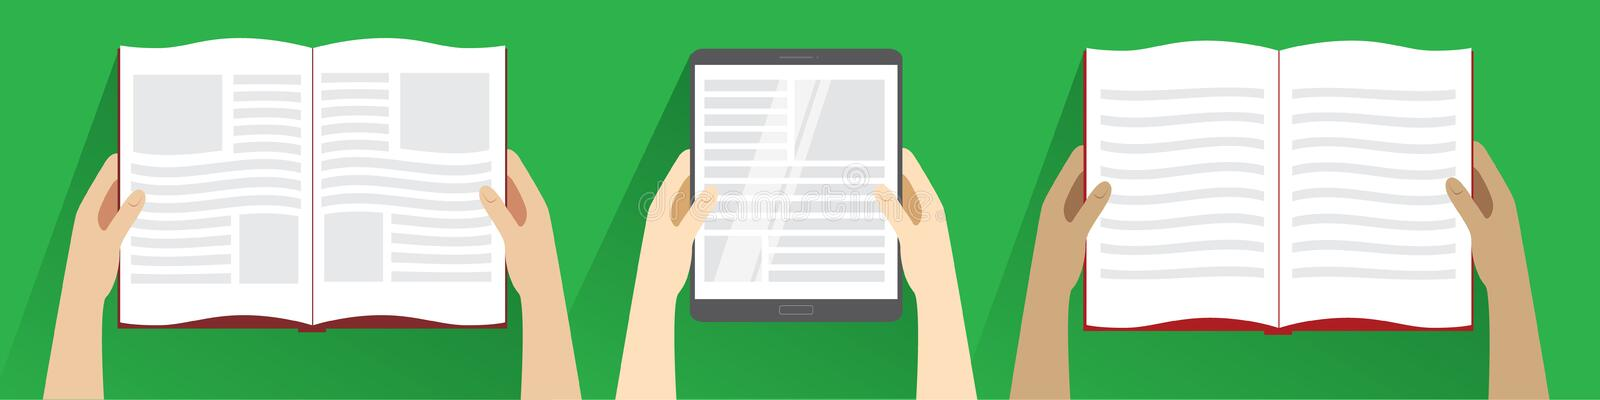 Hands holding open book and tablet computer. Top view. royalty free illustration